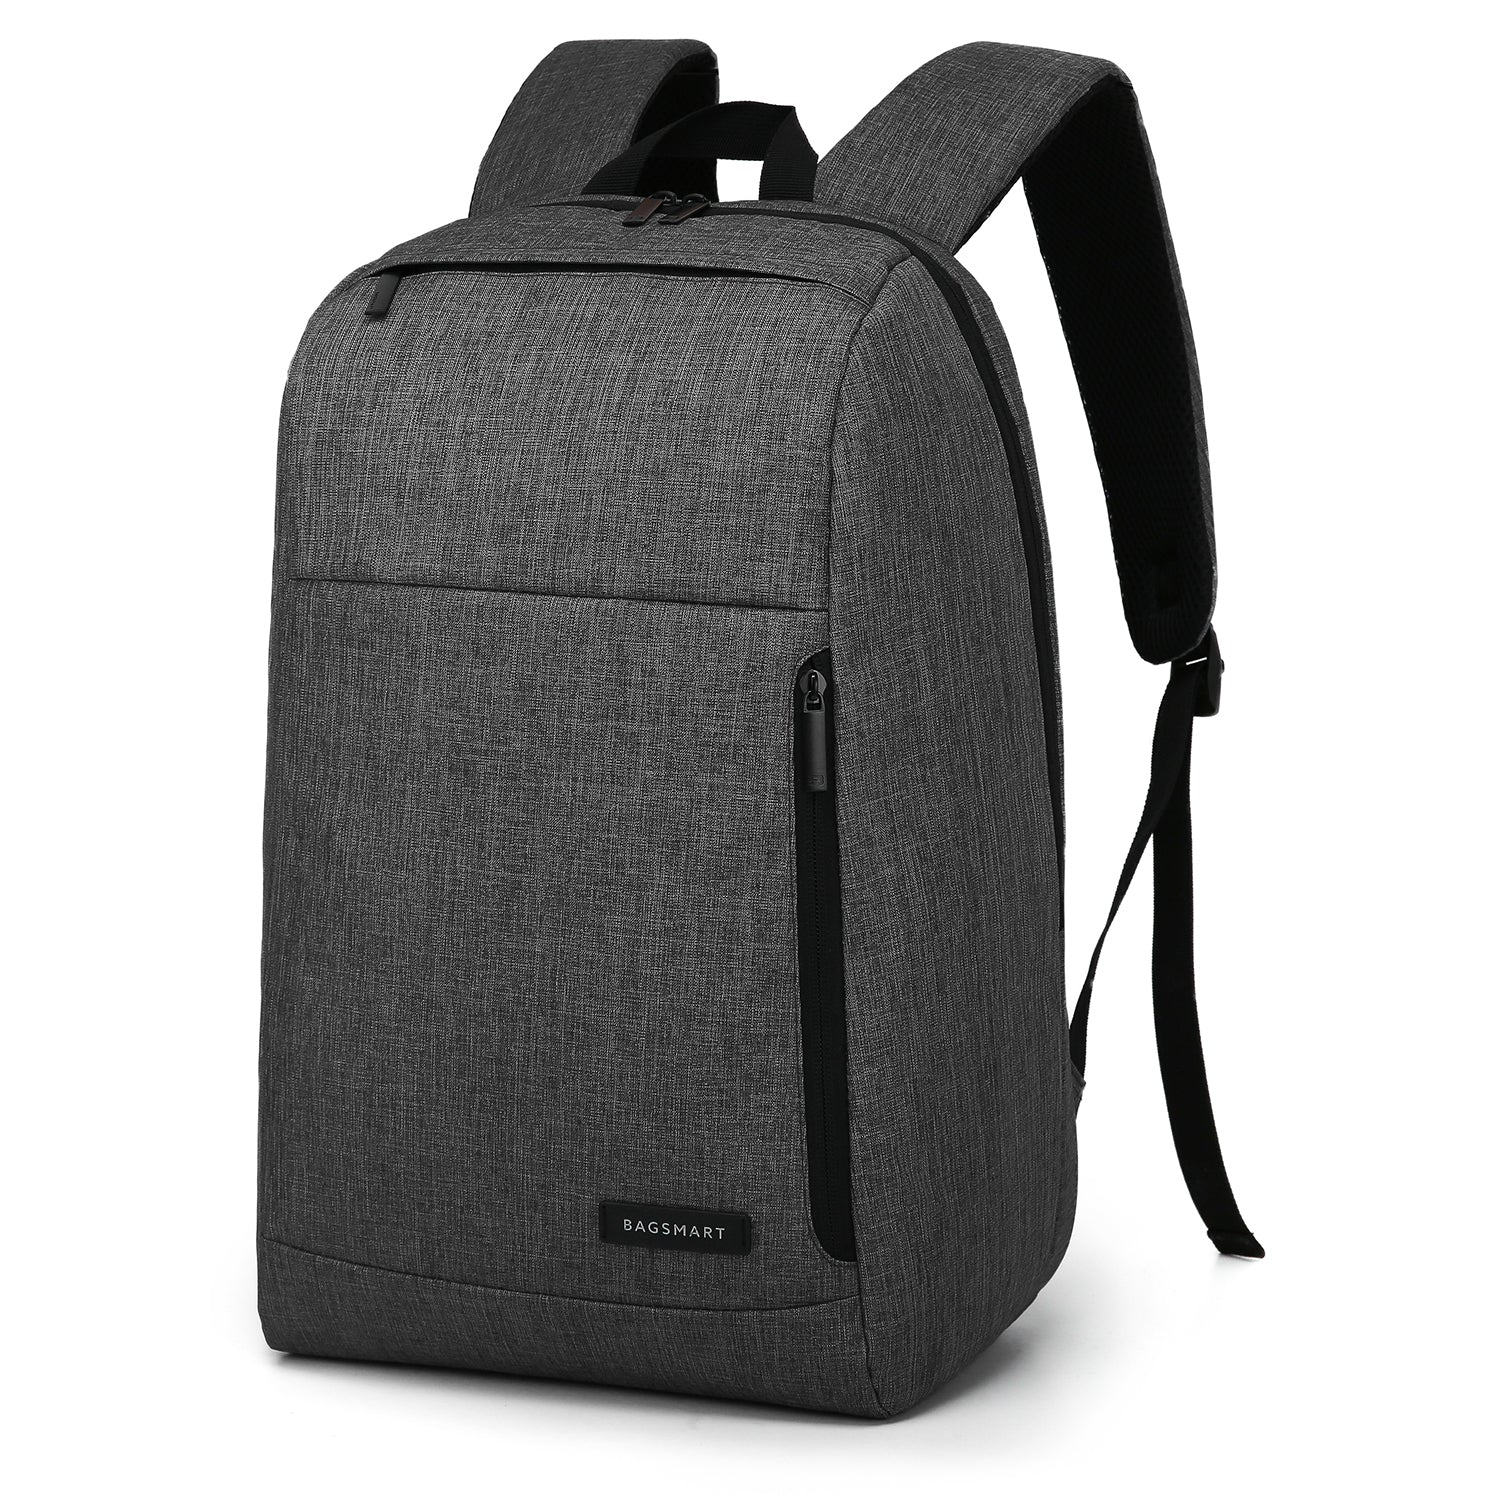 0cebe2f2e6c8 BAGSMART Business Laptop Backpack Water Resistant Slim School Backpack Fits  Up To15.6 Inch Laptops